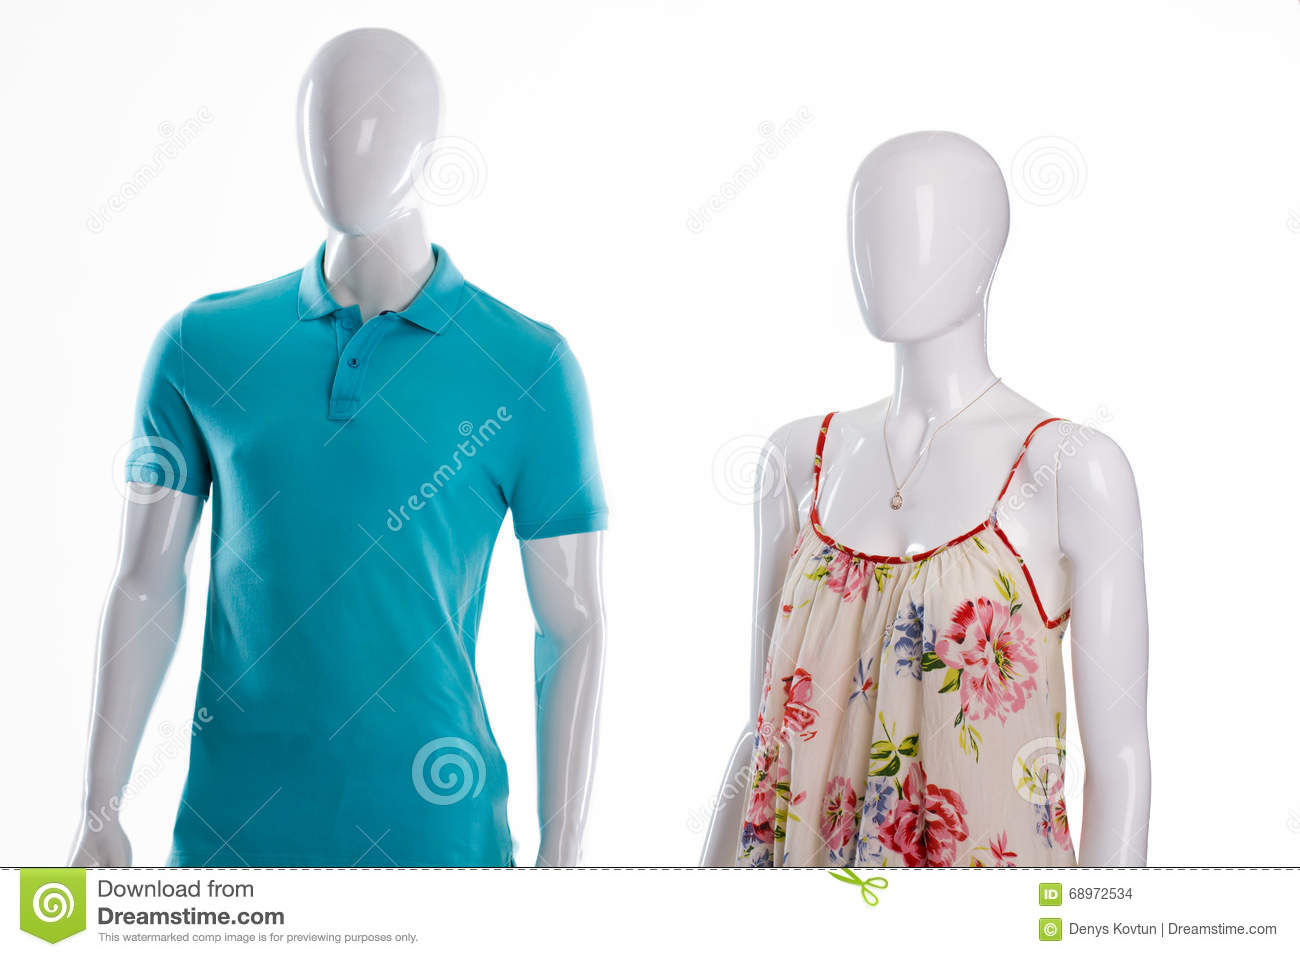 baf295f43ecf T-shirt and sarafan on mannequins. Mannequins in casual summer clothing. Men s  polo and woman s sarafan. Casual clothes sale.